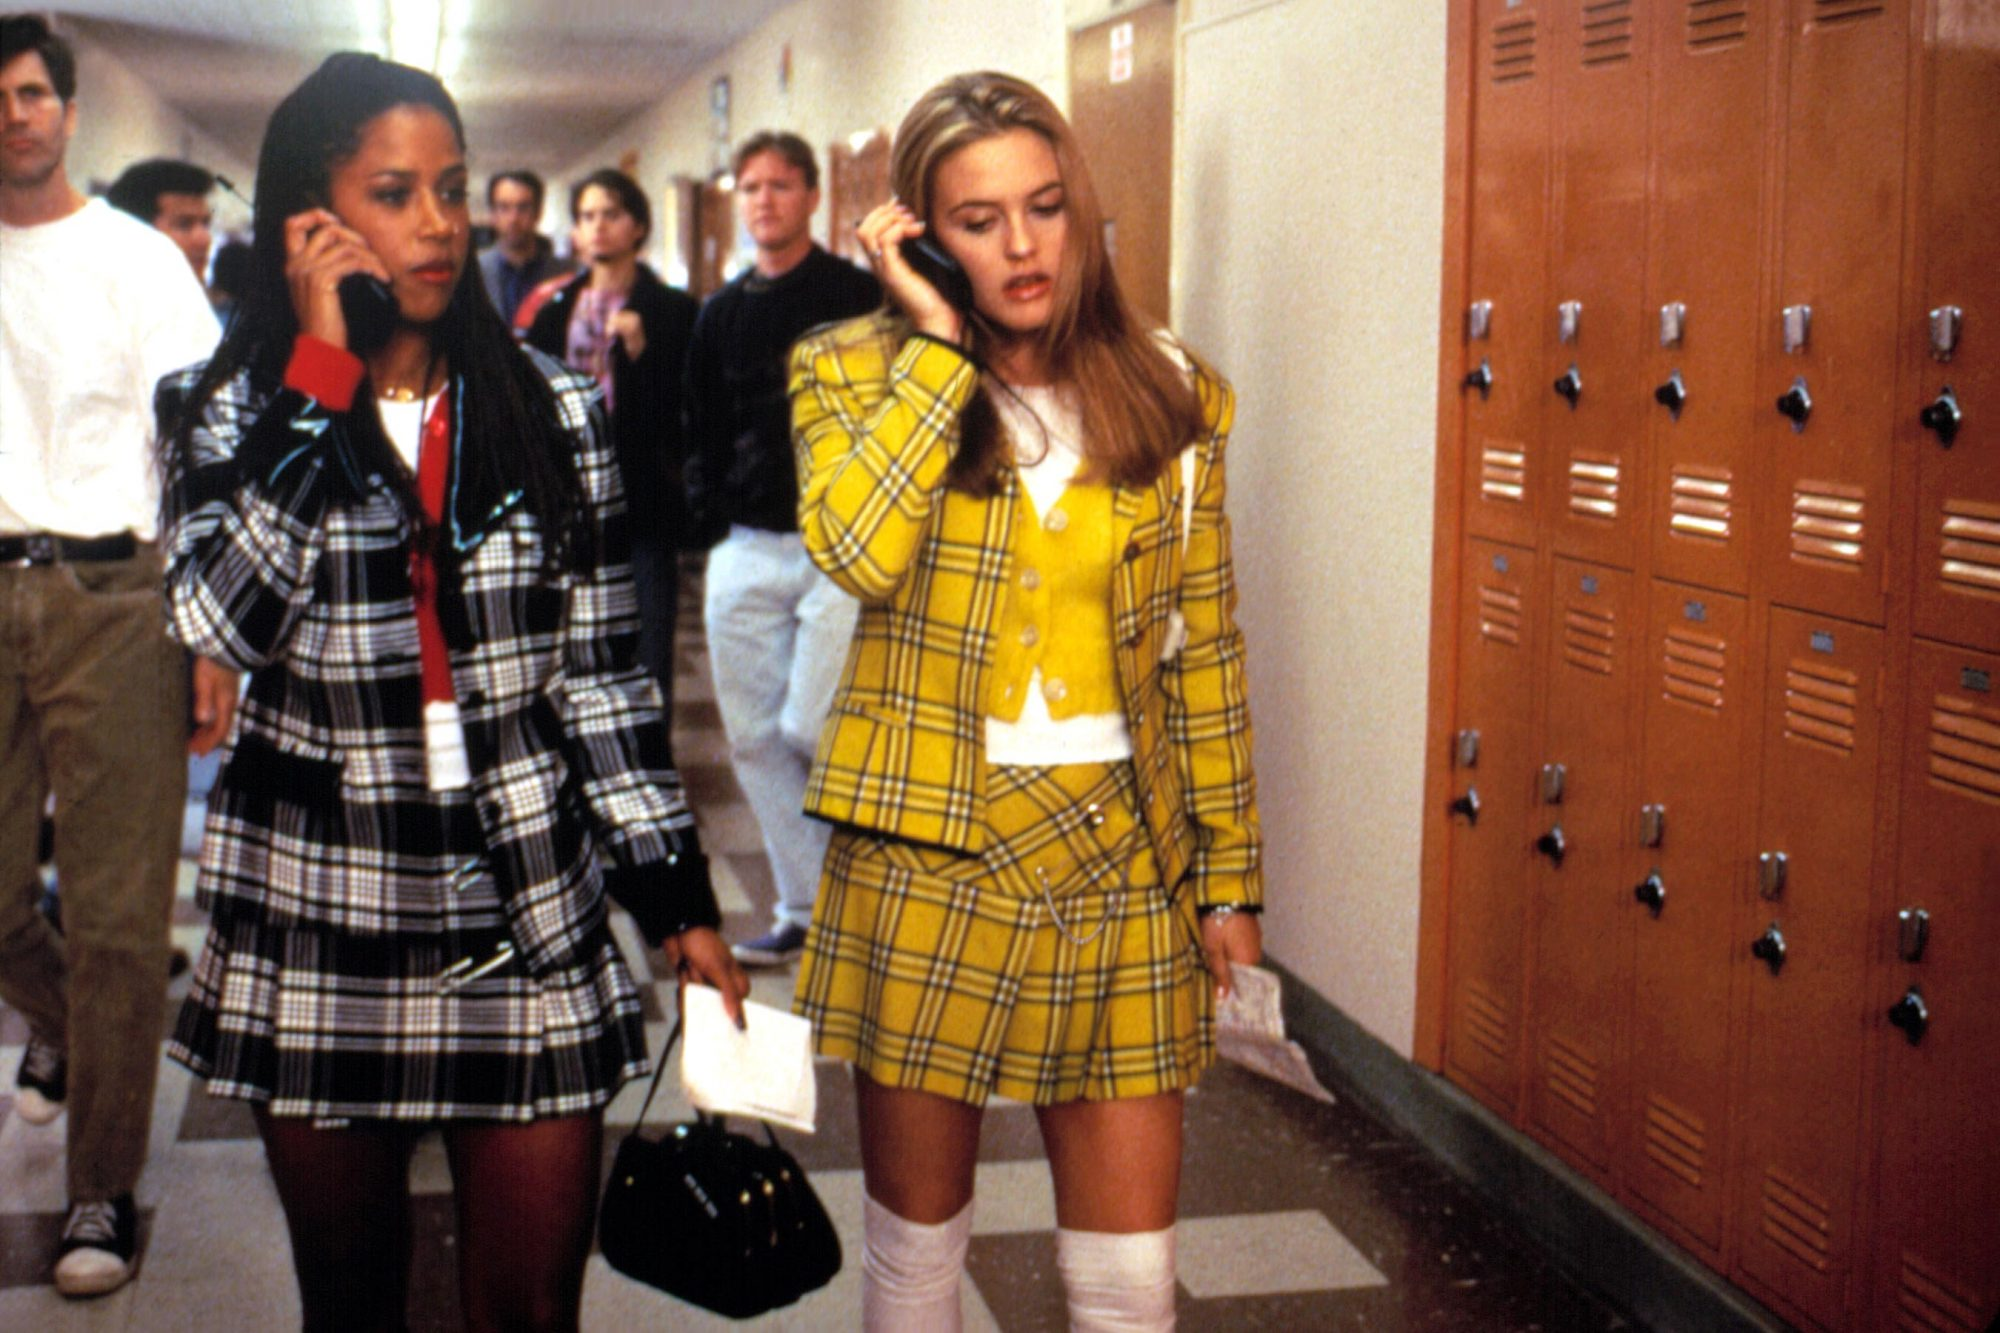 CLUELESS, Alicia Silverstone, Stacey Dash, 1995. © Paramount Pictures/ Courtesy: Everett Collection